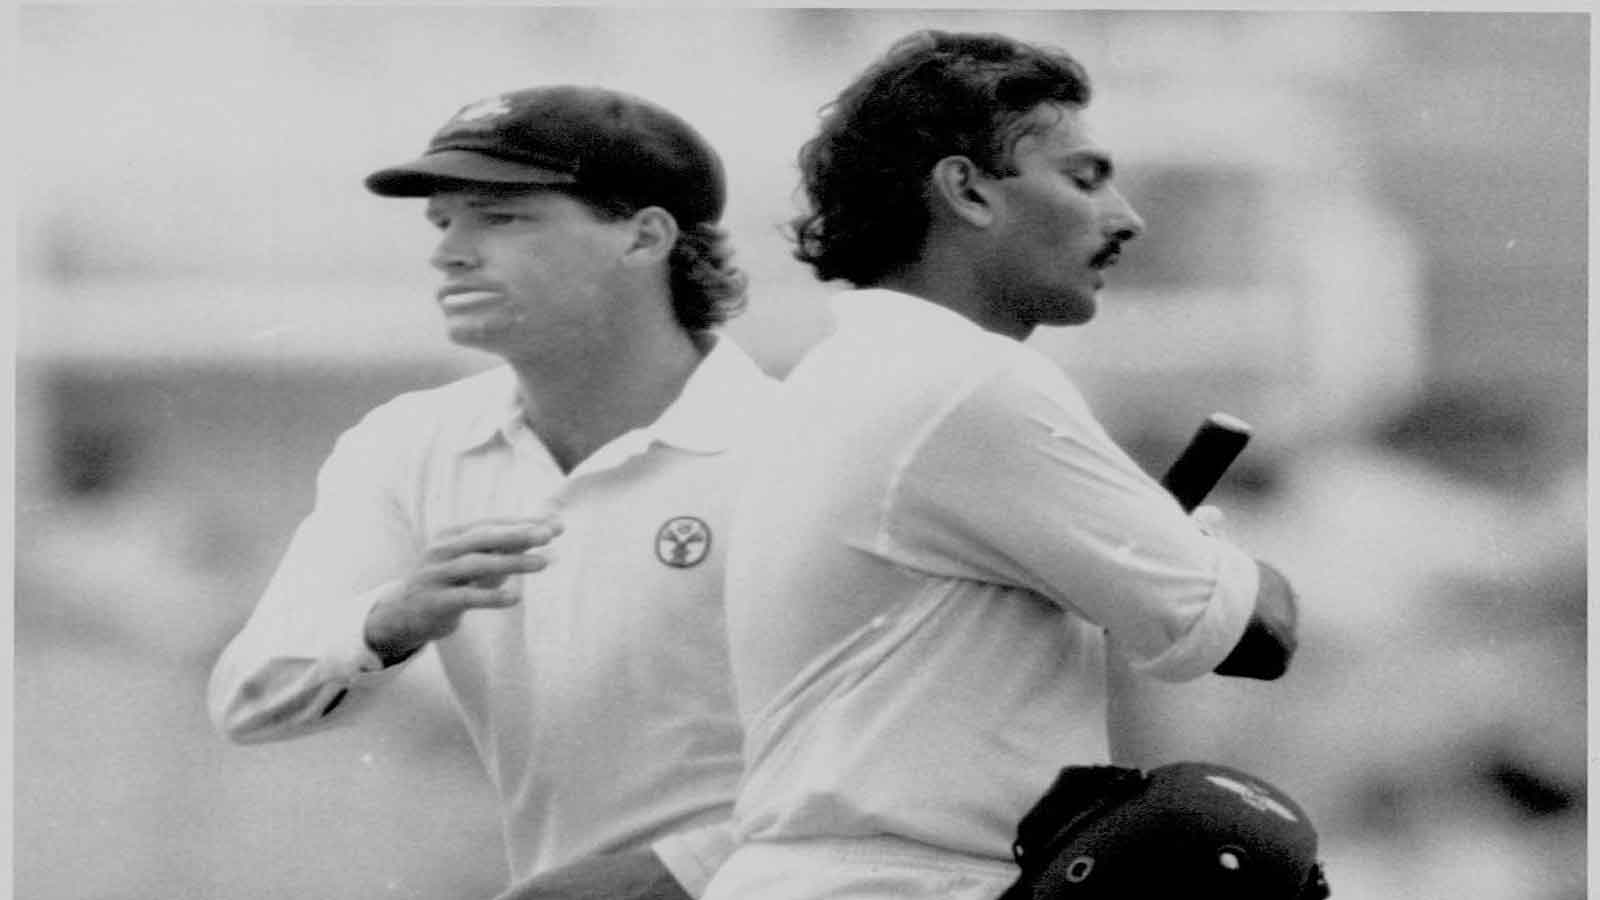 dean-jones-was-ahead-of-his-time-in-odi-format-ravi-shastri